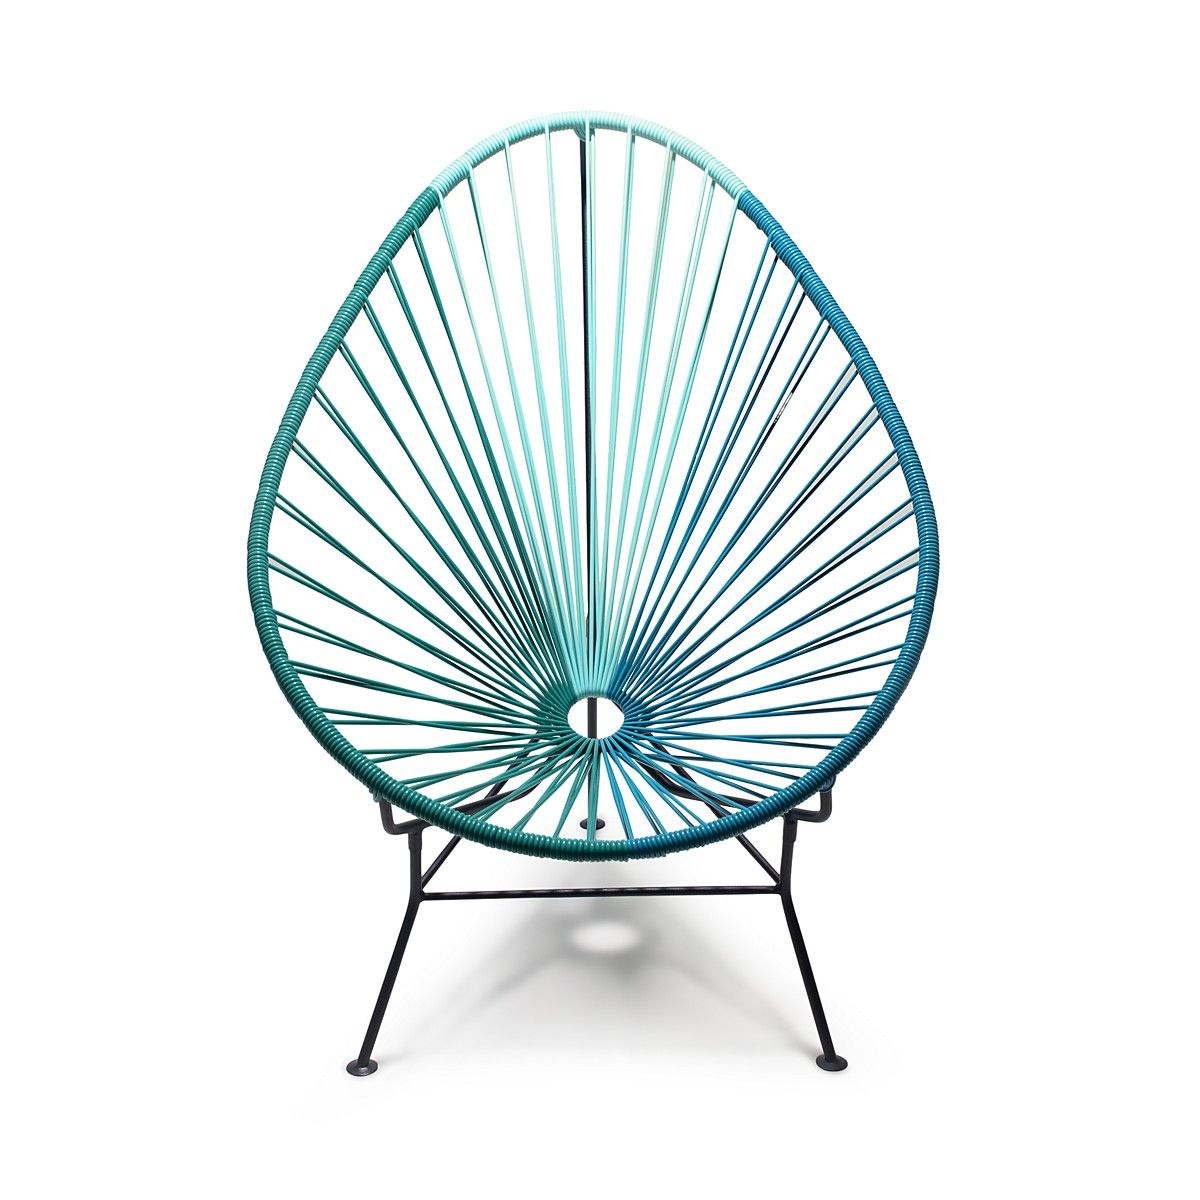 Miraculous Acapulco Lounge Chair 100 Exclusive 100 Bloomingdales Gmtry Best Dining Table And Chair Ideas Images Gmtryco